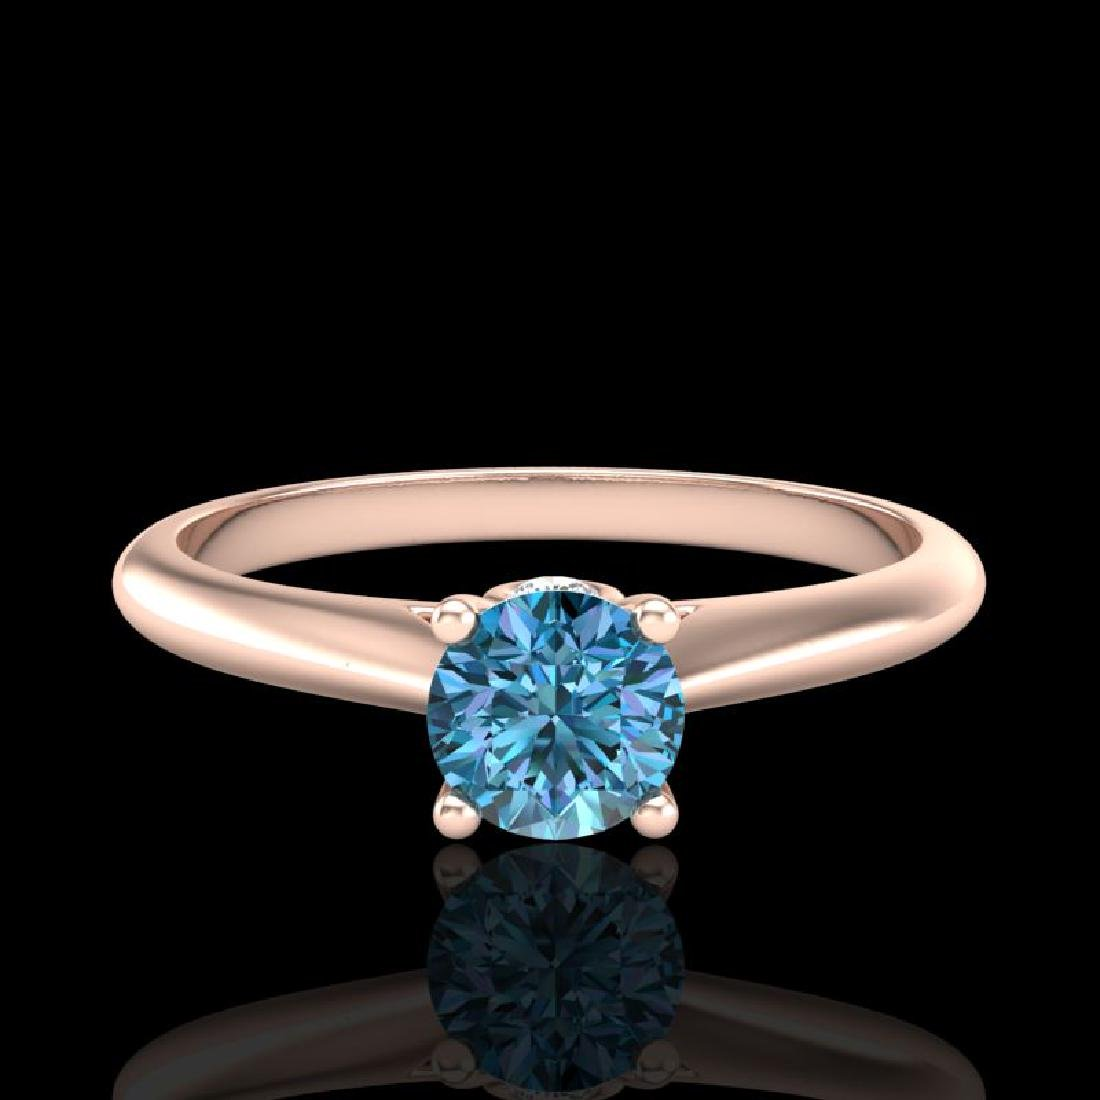 0.4 CTW Intense Blue Diamond Solitaire Engagement Art - 2